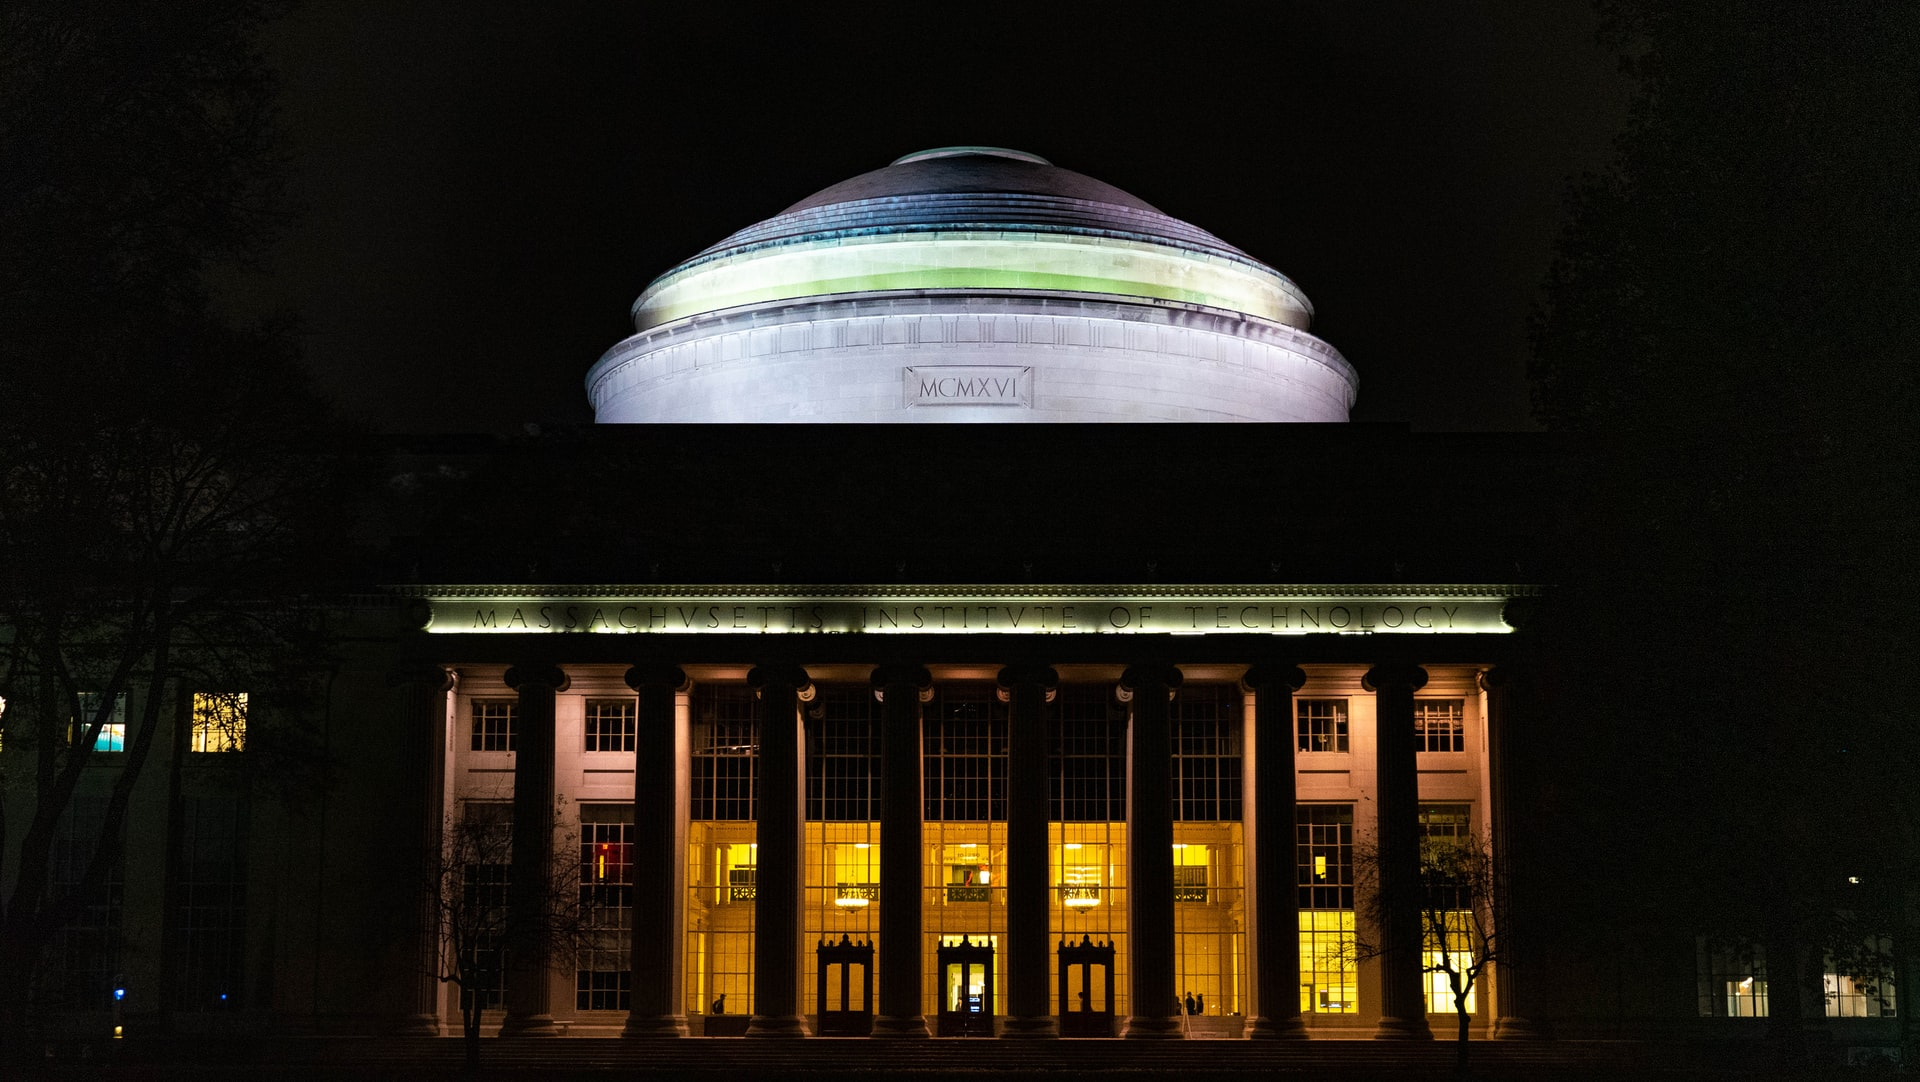 The Great Dome of MIT at night.